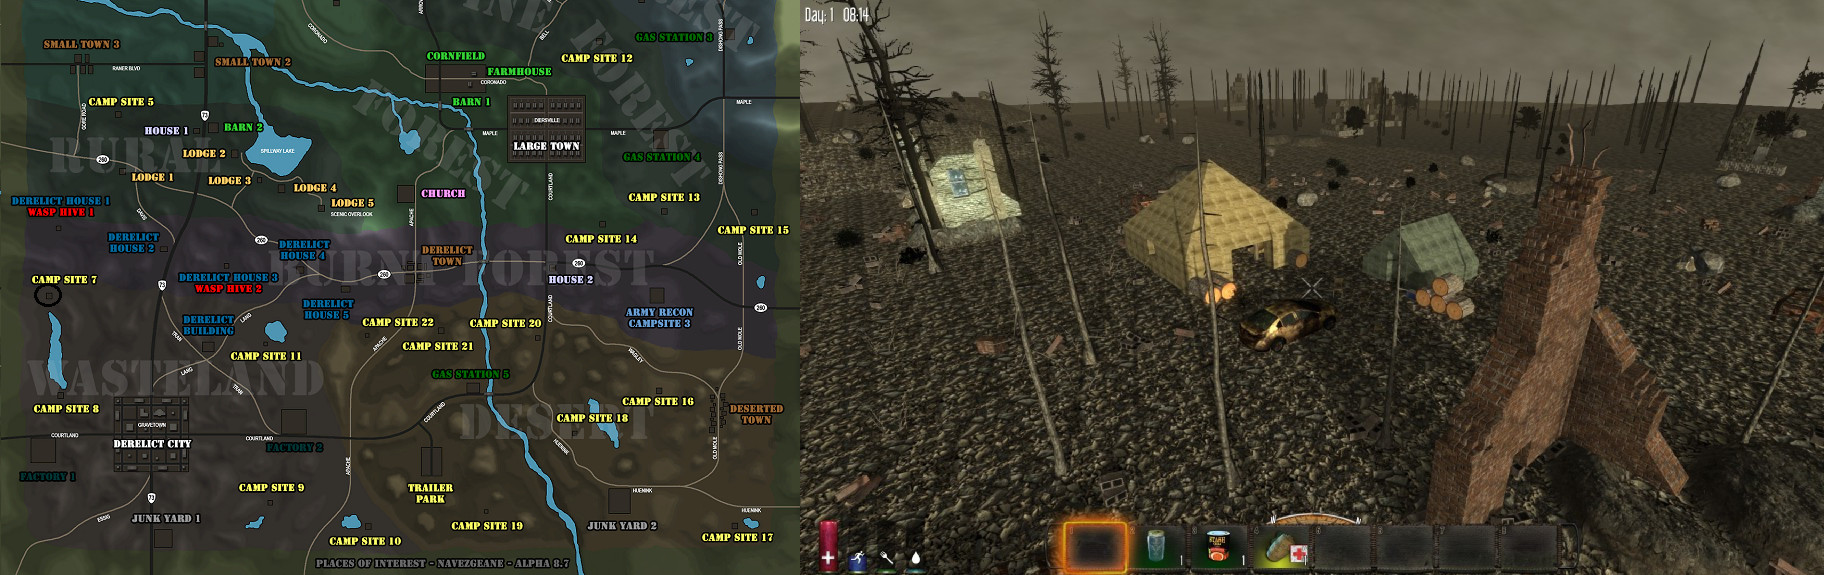 7 Days to Die Printable Map Best Of Steam Munity Guide 7 Days to Die Buildings Map and Pictures